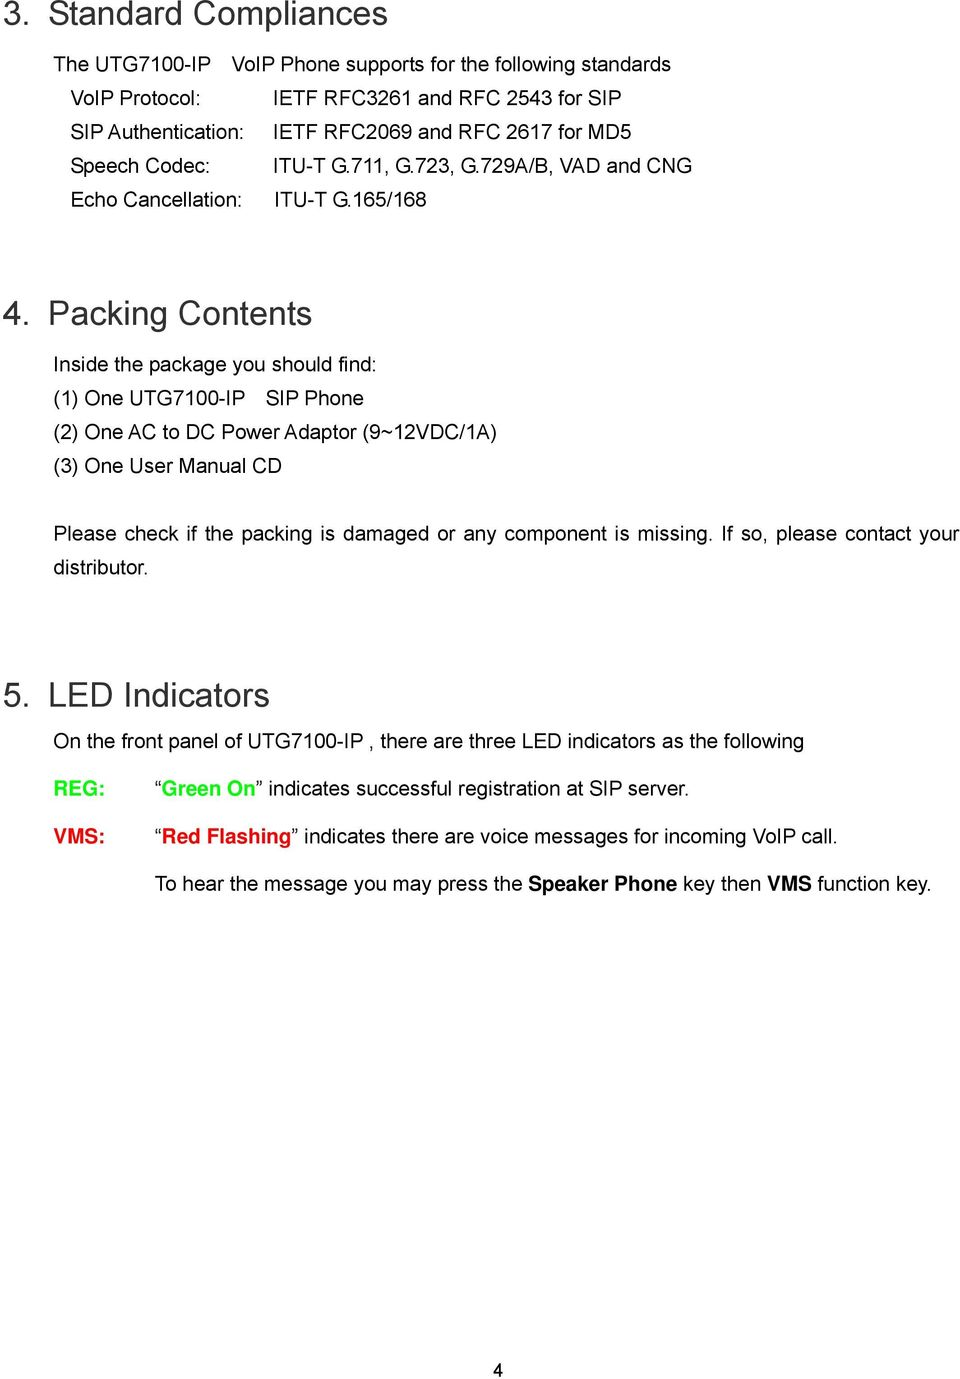 Packing Contents Inside the package you should find: (1) One UTG7100-IP SIP Phone (2) One AC to DC Power Adaptor (9~12VDC/1A) (3) One User Manual CD Please check if the packing is damaged or any